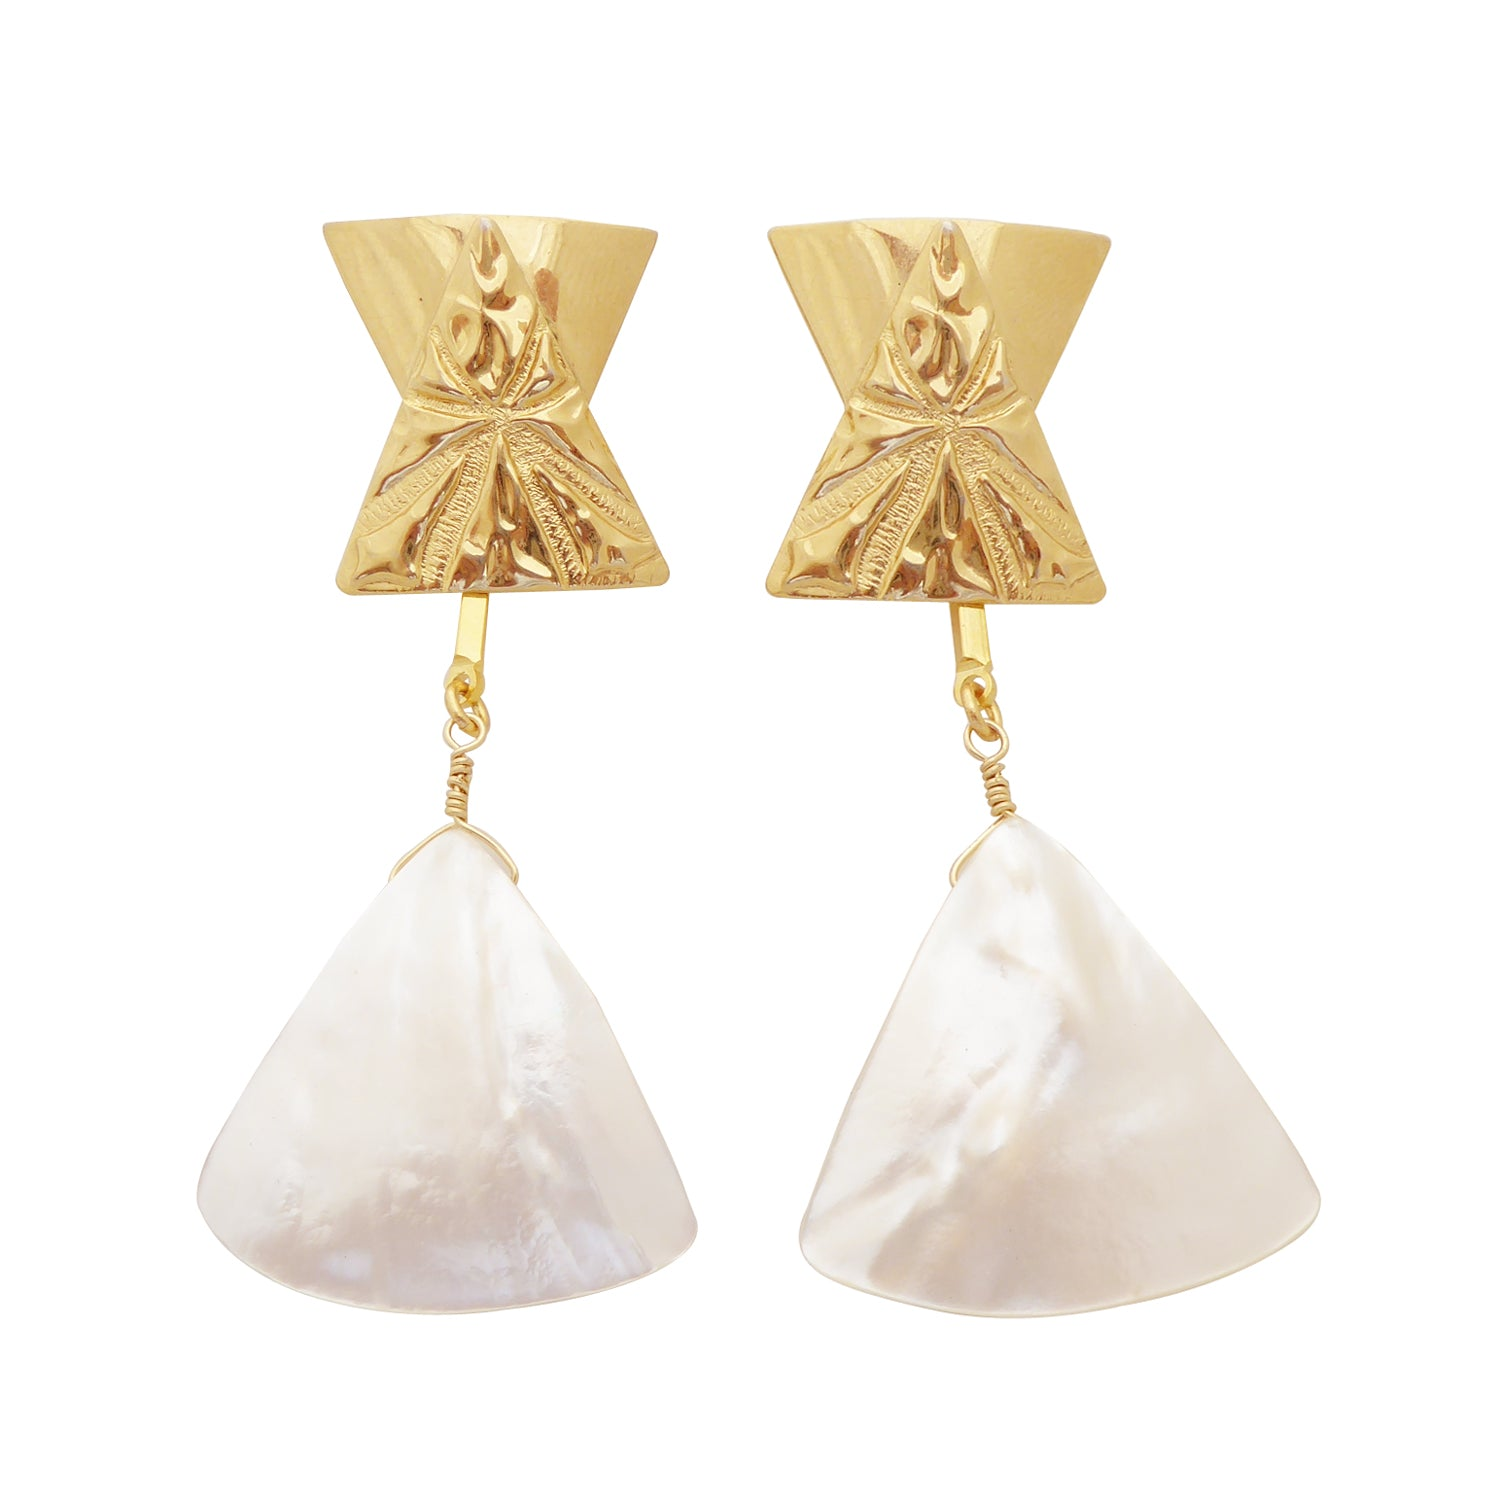 Triantan gold and white mother of pearl triangle earrings by Jenny Dayco 1